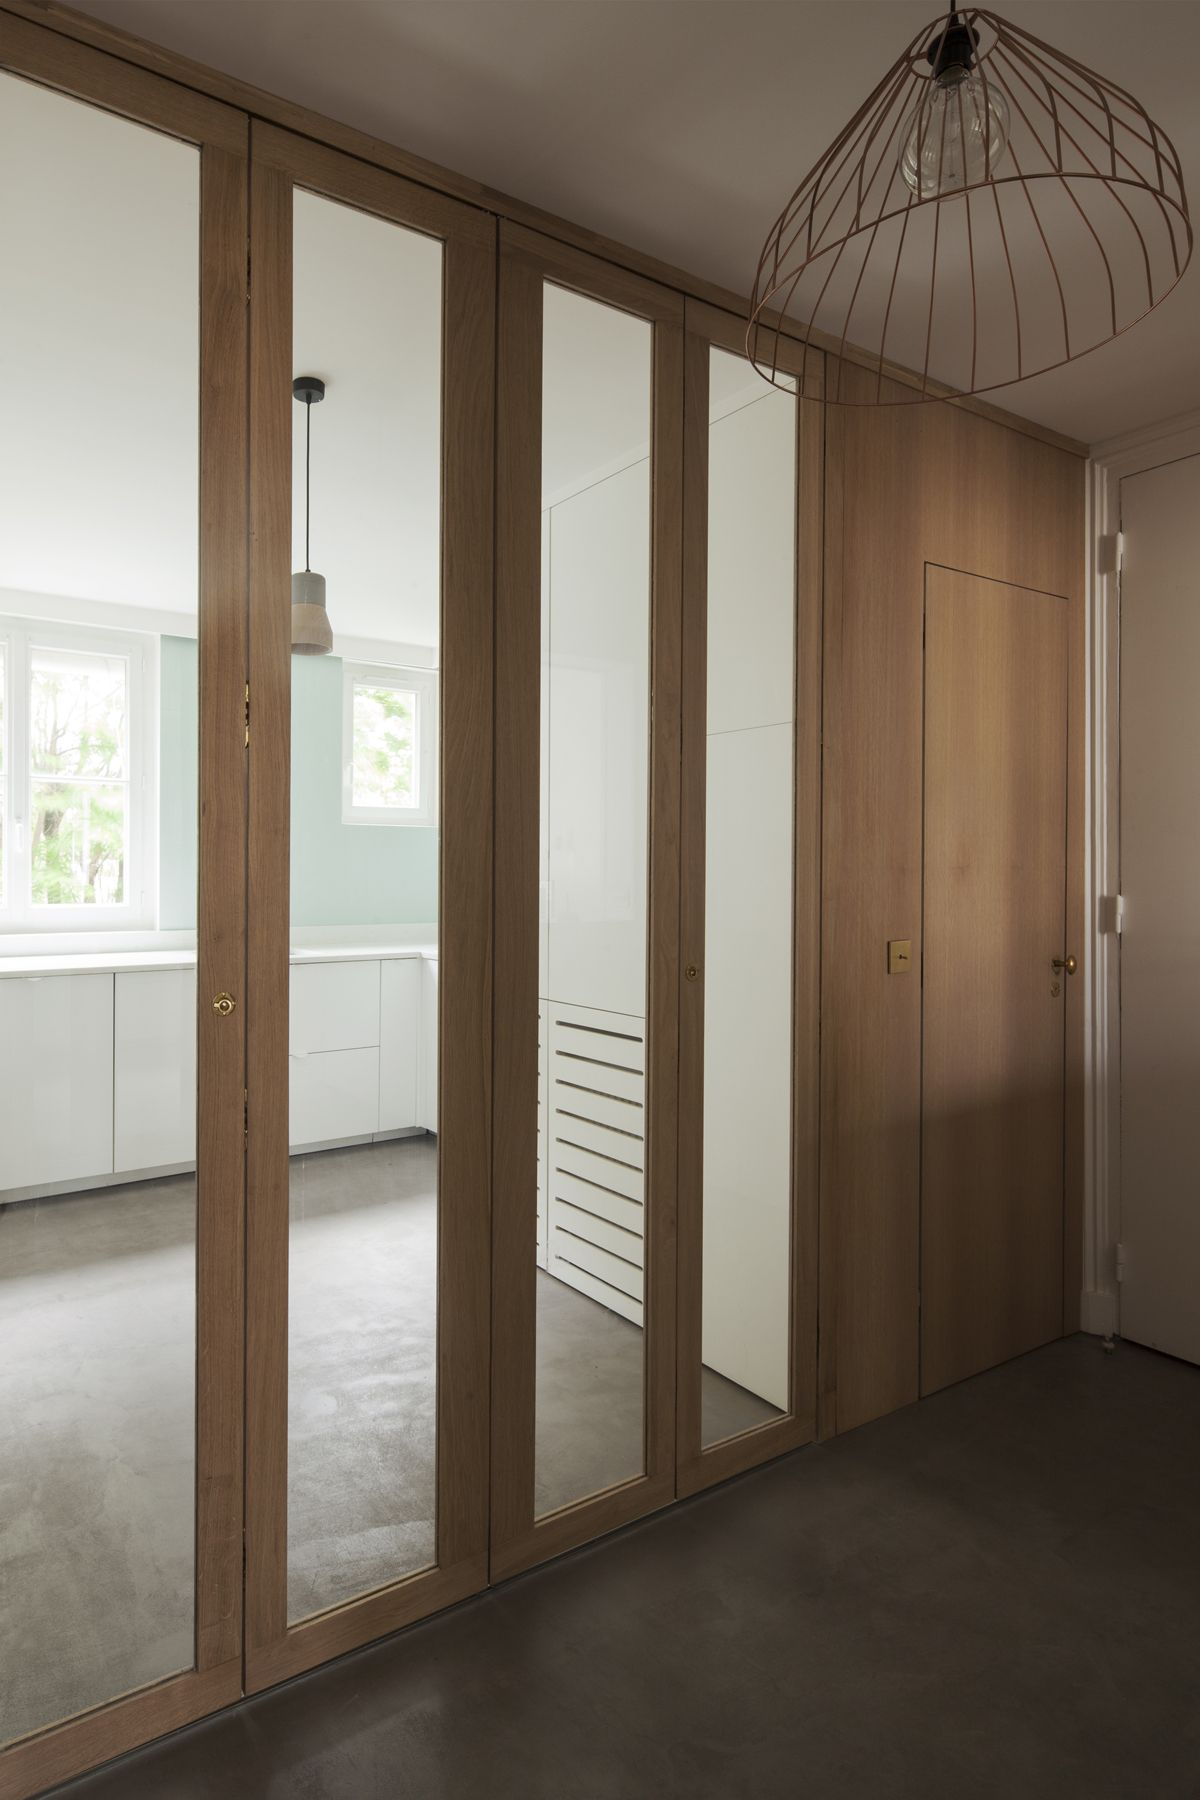 batiik-architecture-interieur-renovation-batignolles-paris-montreuil